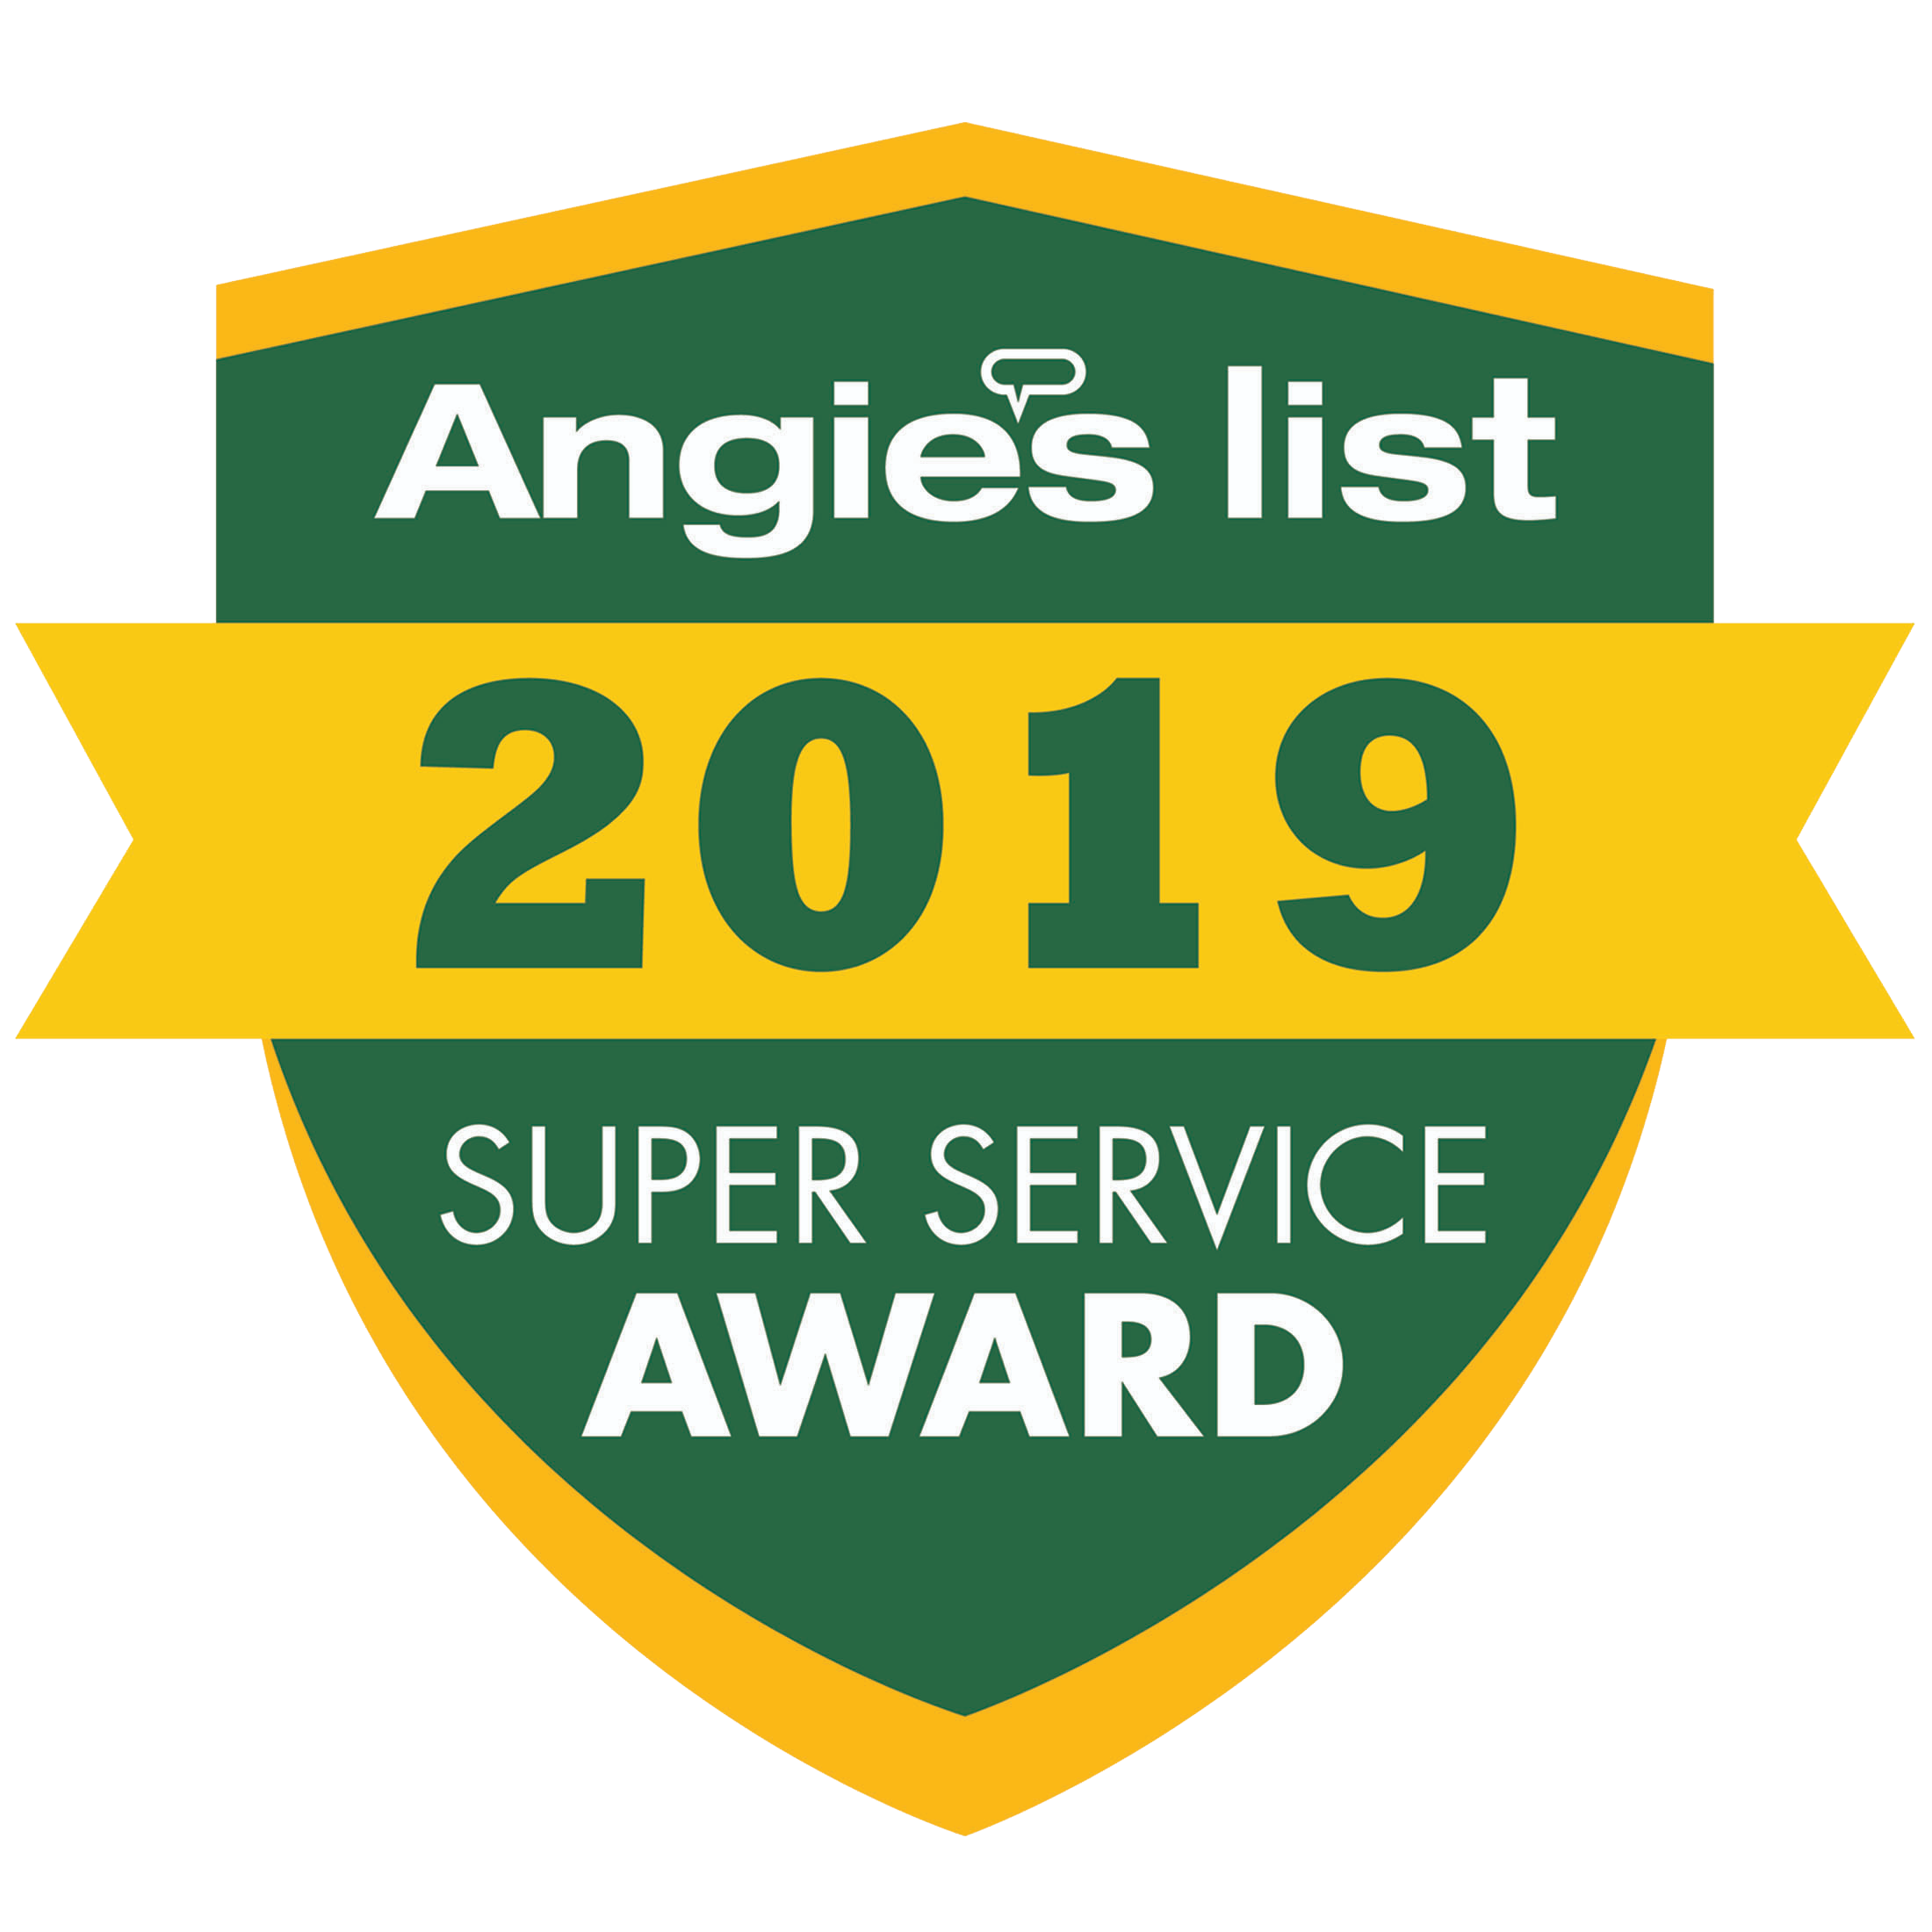 Angies List Award 2019